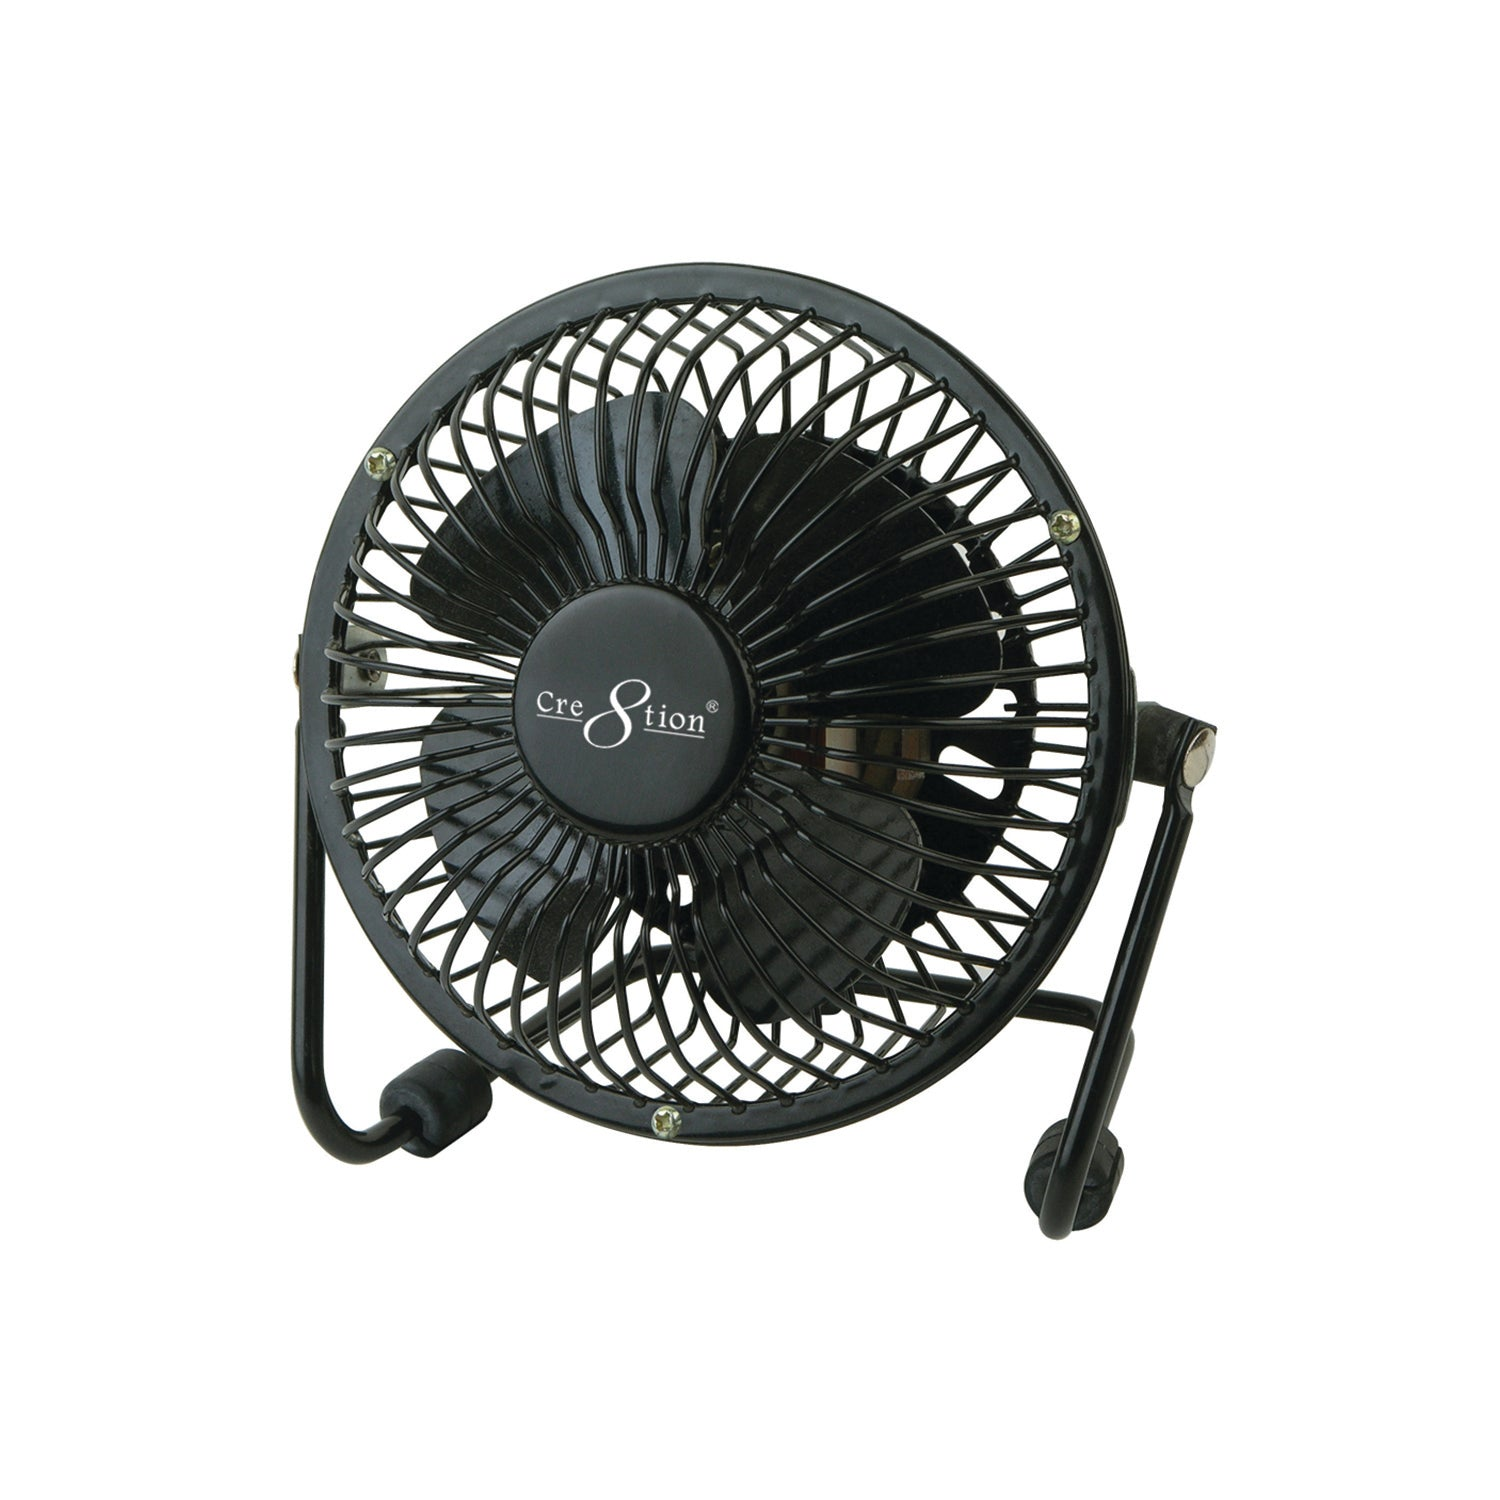 "Cre8tion - One Speed Mini Professional 4"" Salon Fan"